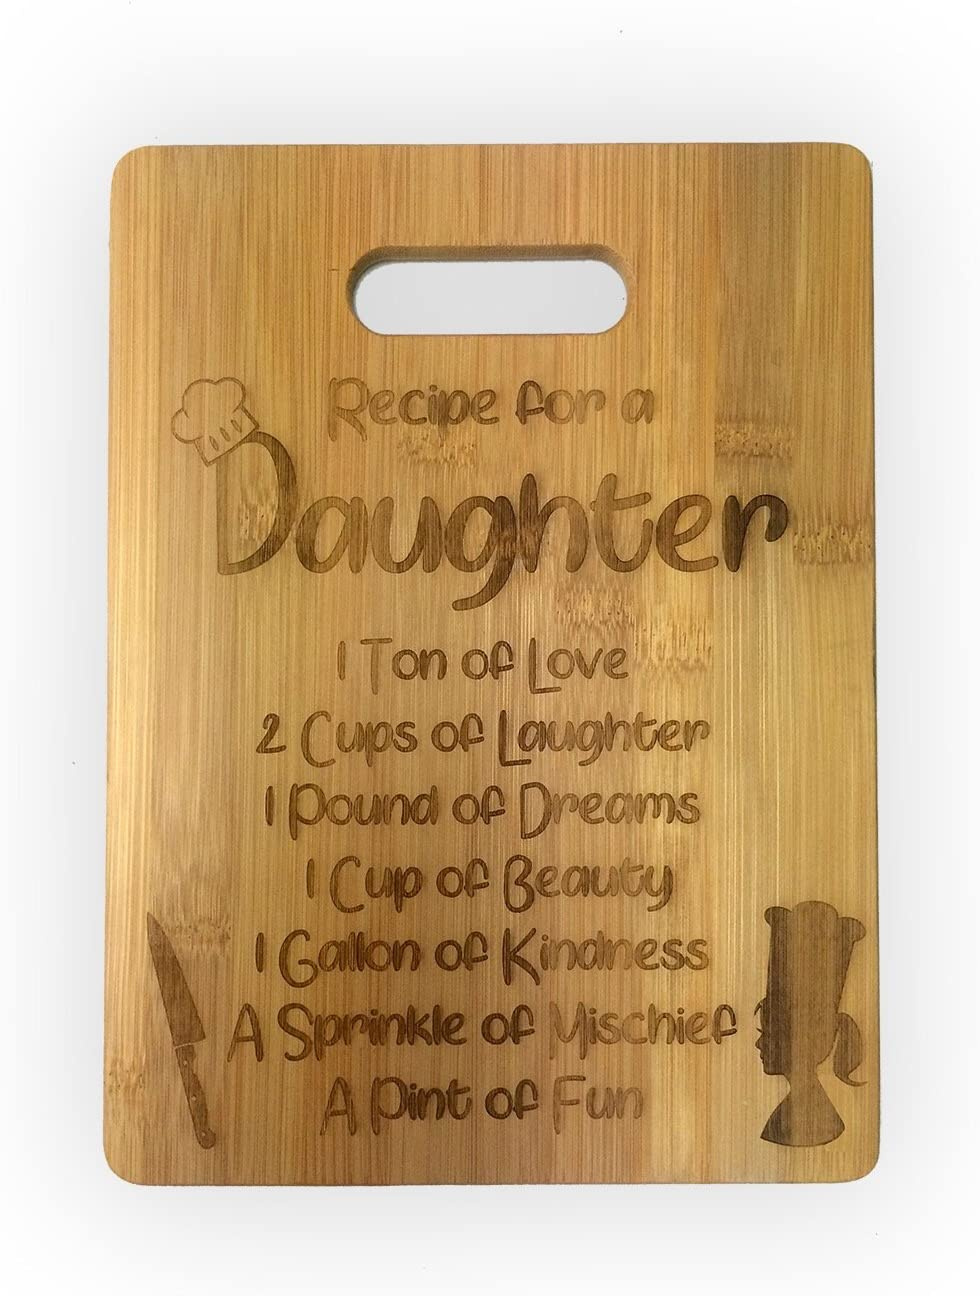 Recipe for a Daughter or Son Cute Funny Laser Engraved Bamboo Cutting Board - Wedding, Housewarming, Anniversary, Birthday, Mother's Day, Gift For Him, For Her, For Boys, For Girls,For Them (Daughter)